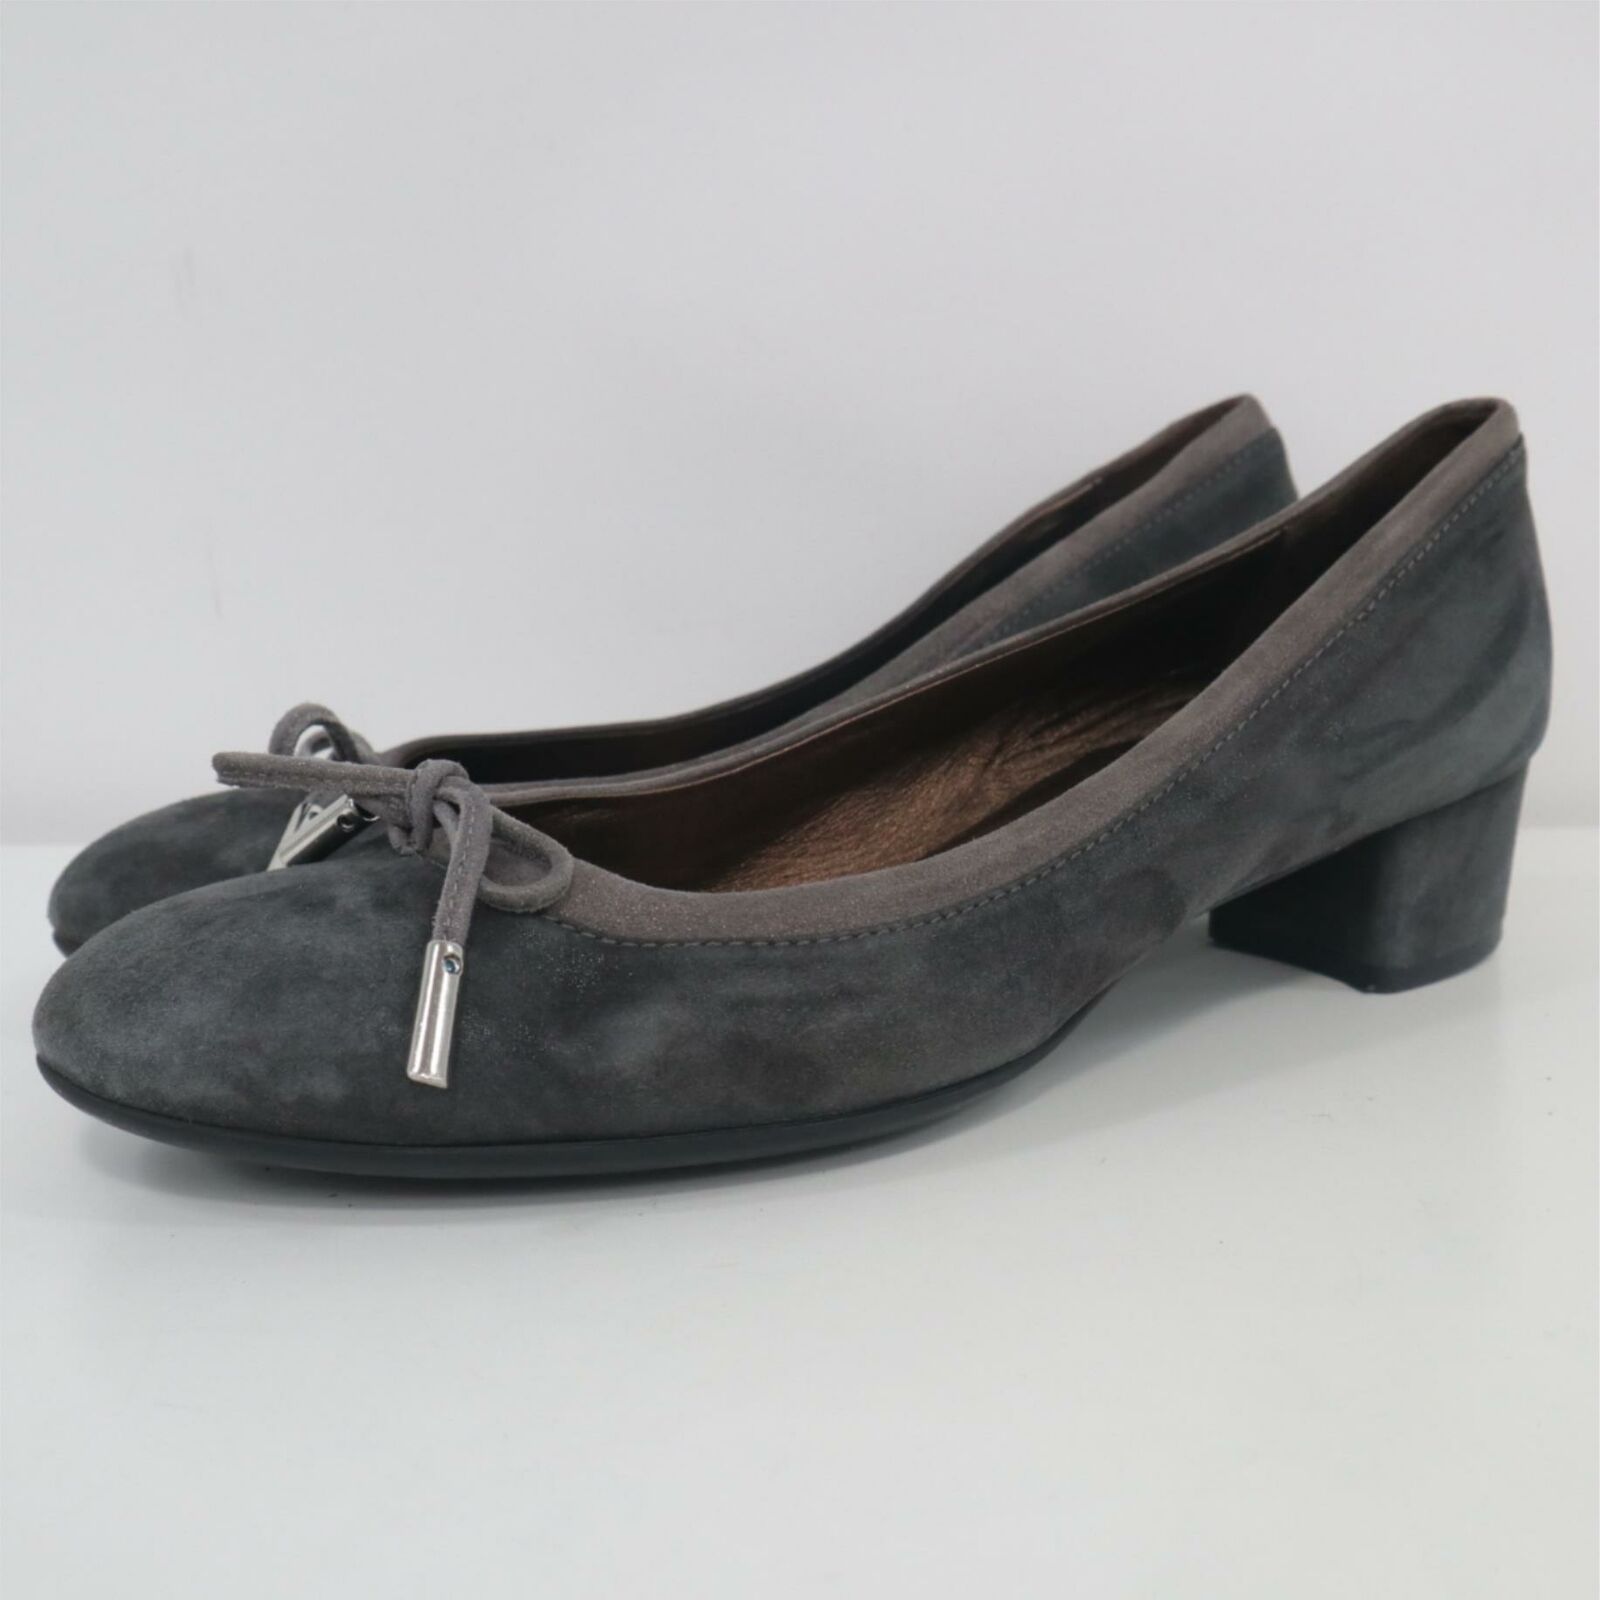 AGL Ballet Pumps 8.5 Kristin Suede Leather Round Toe Bow Block Heel Gray Work